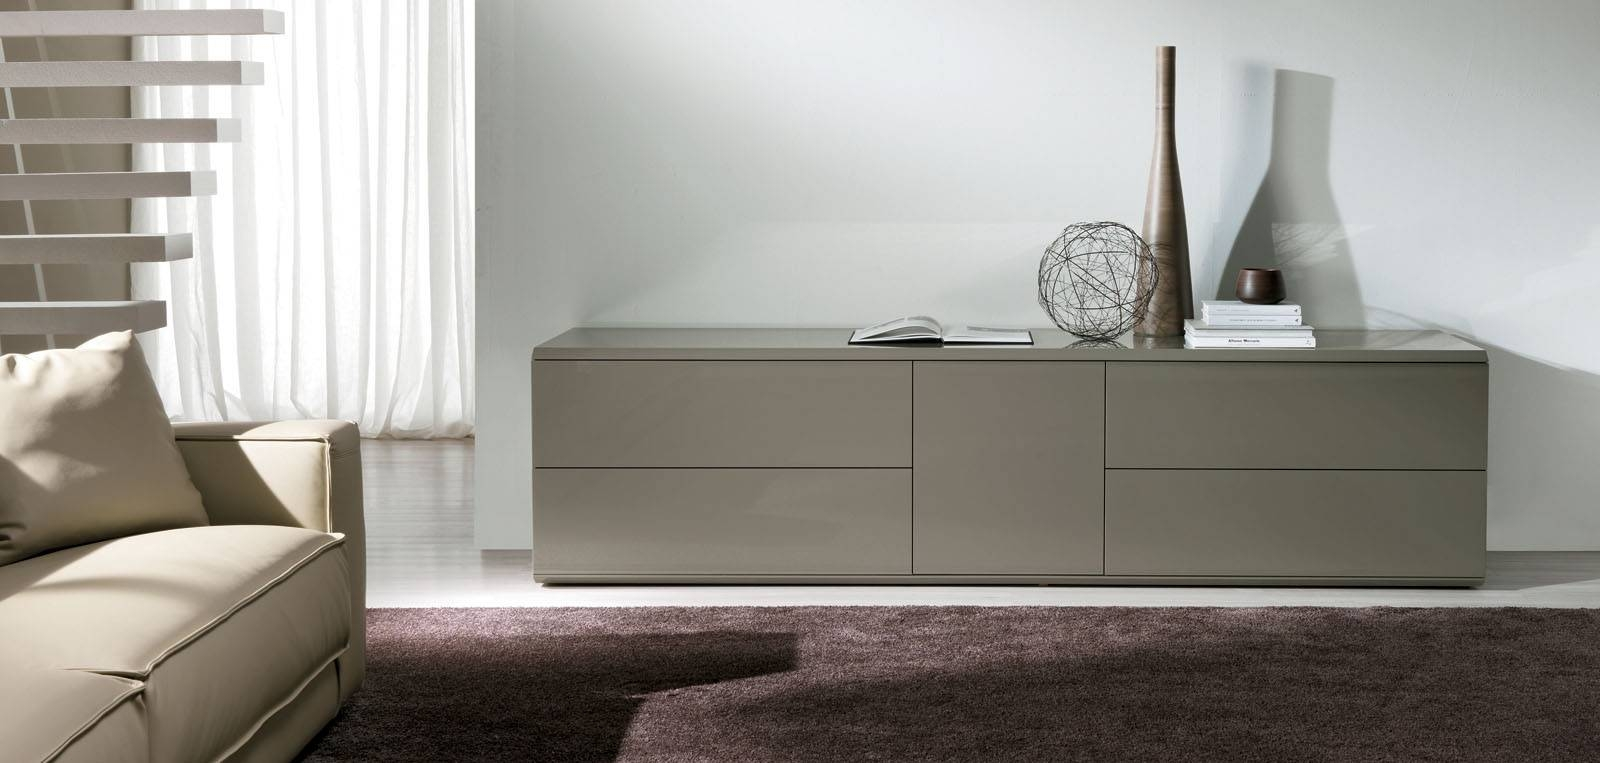 Tremendous Modern Dark Grey Sideboard Design With Two Cabinet Pertaining To Modern Living Room Sideboards (#19 of 20)